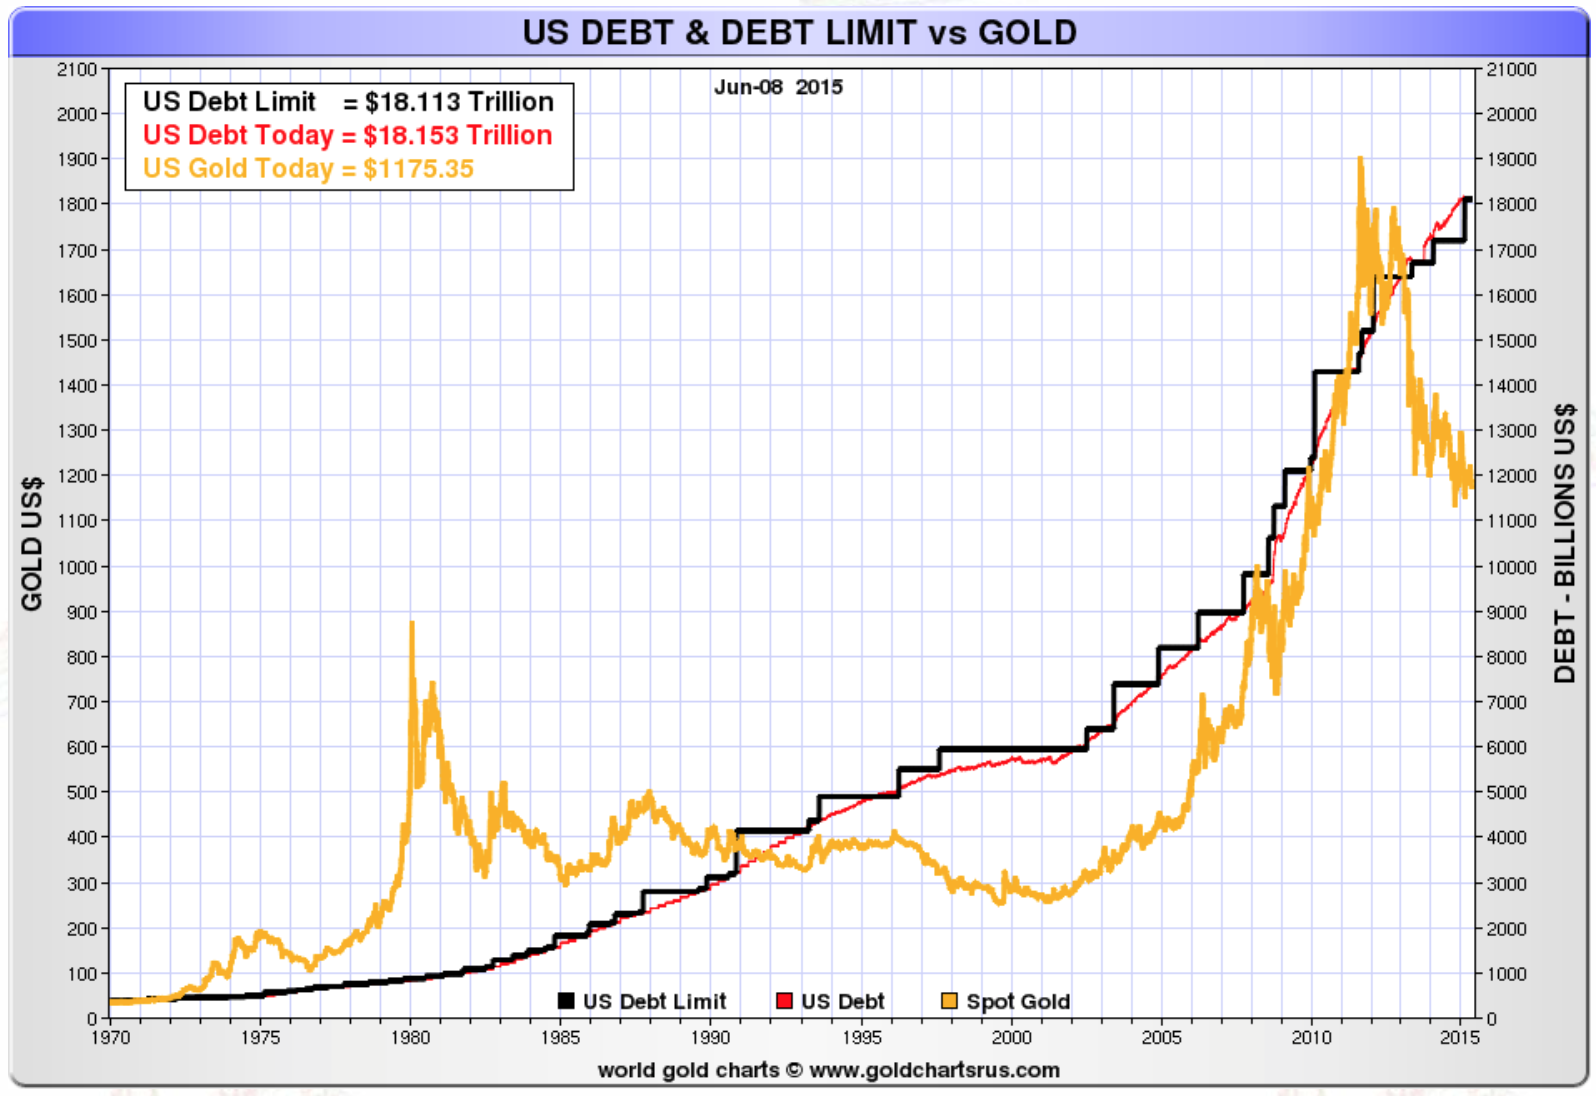 https://www.goldbroker.fr/media/image/cms/media/images/newscast-ep1/US-debt-debt-limit-gold.png